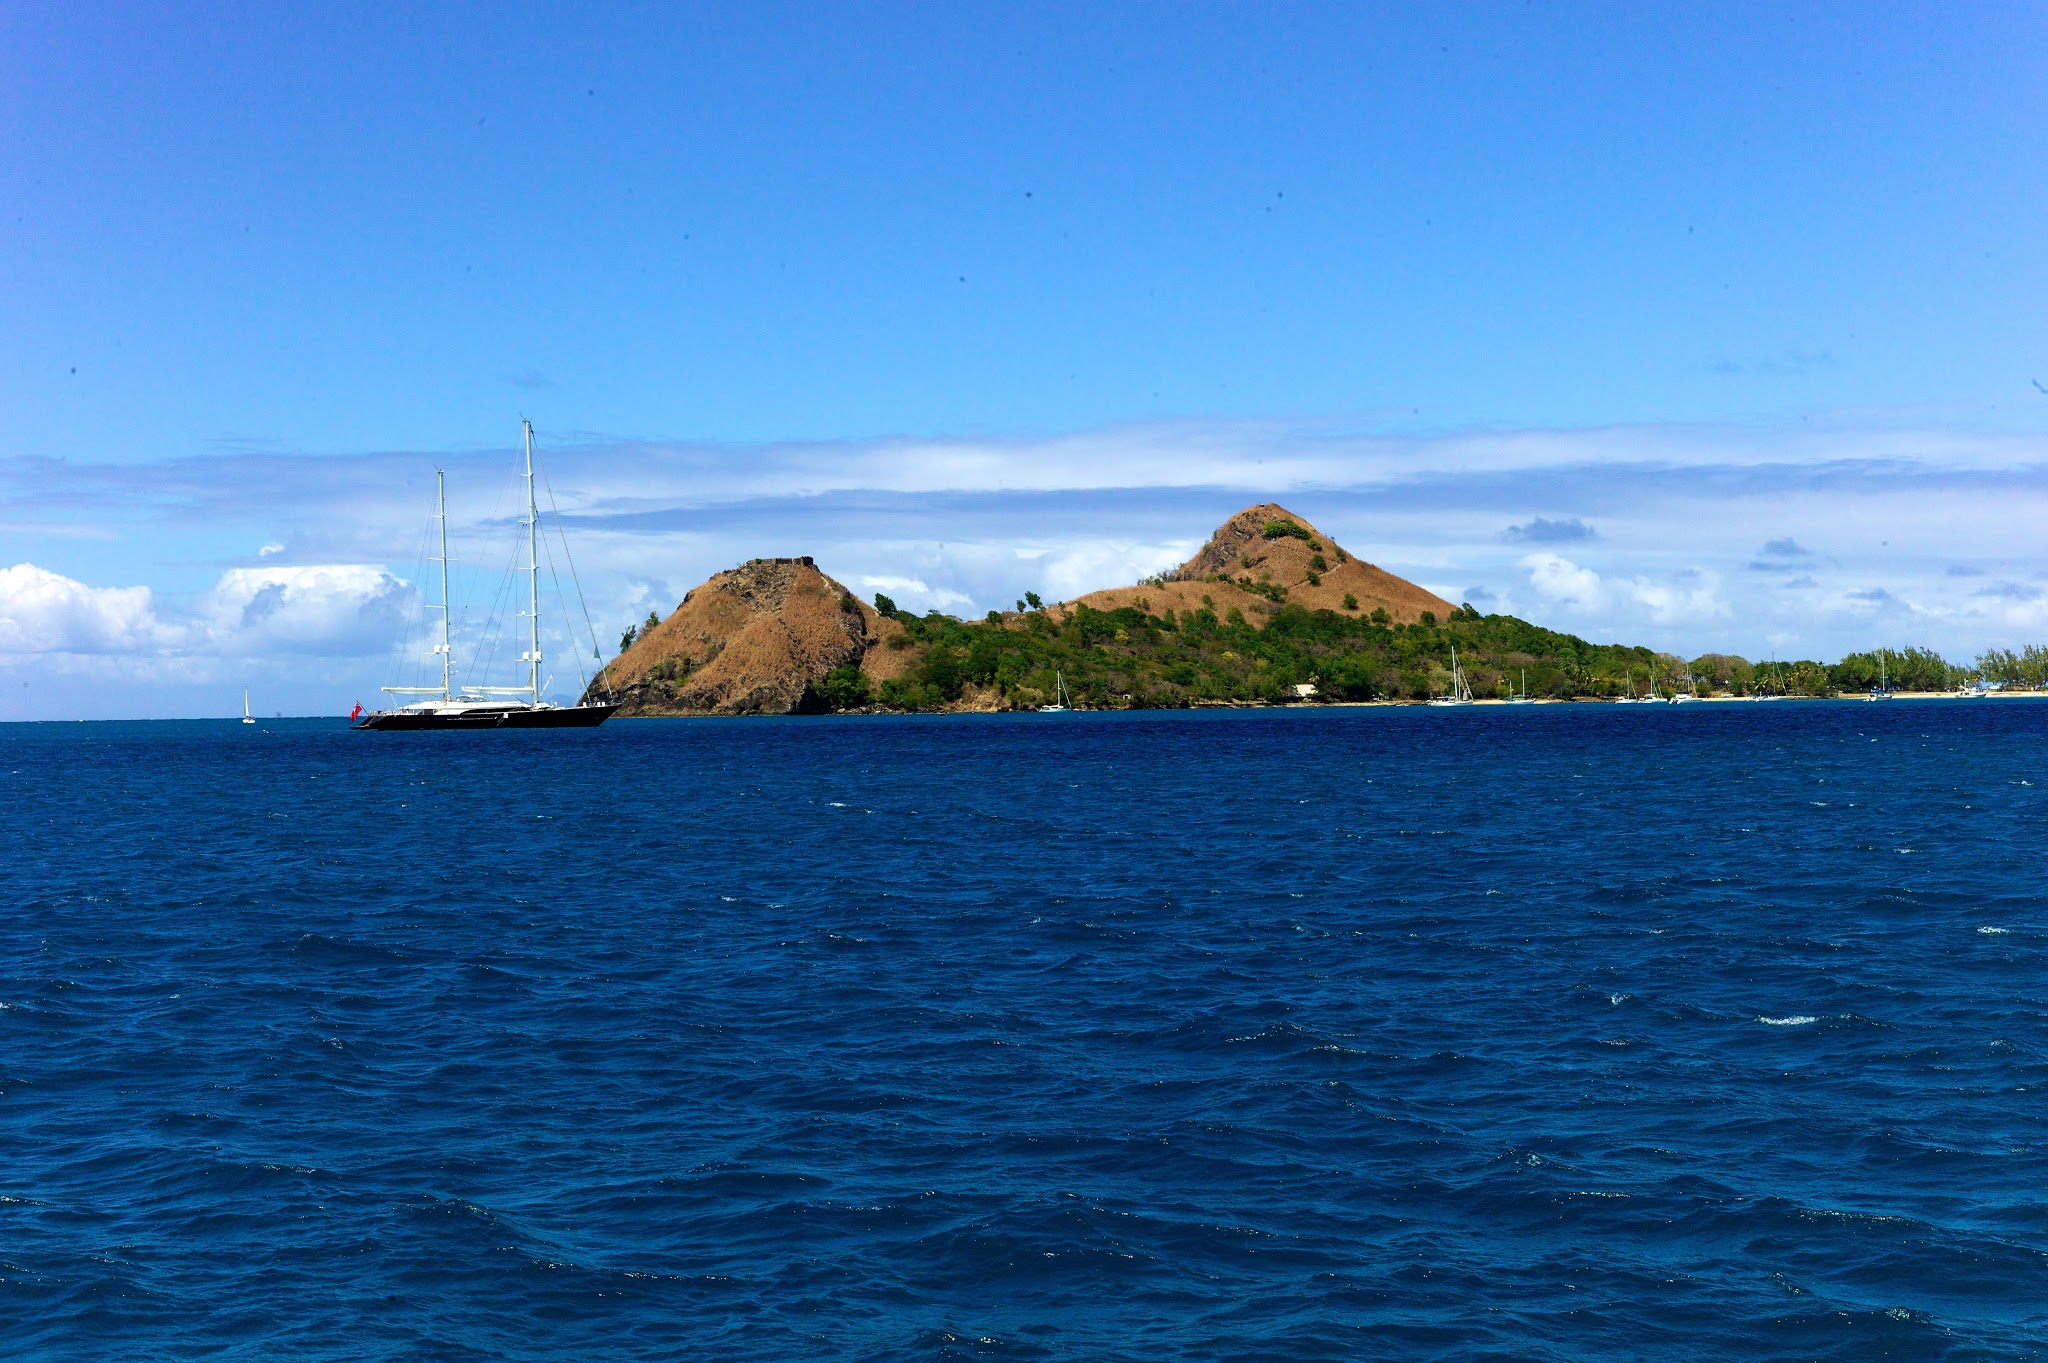 Photo taken of Saint Lucia island while sailing